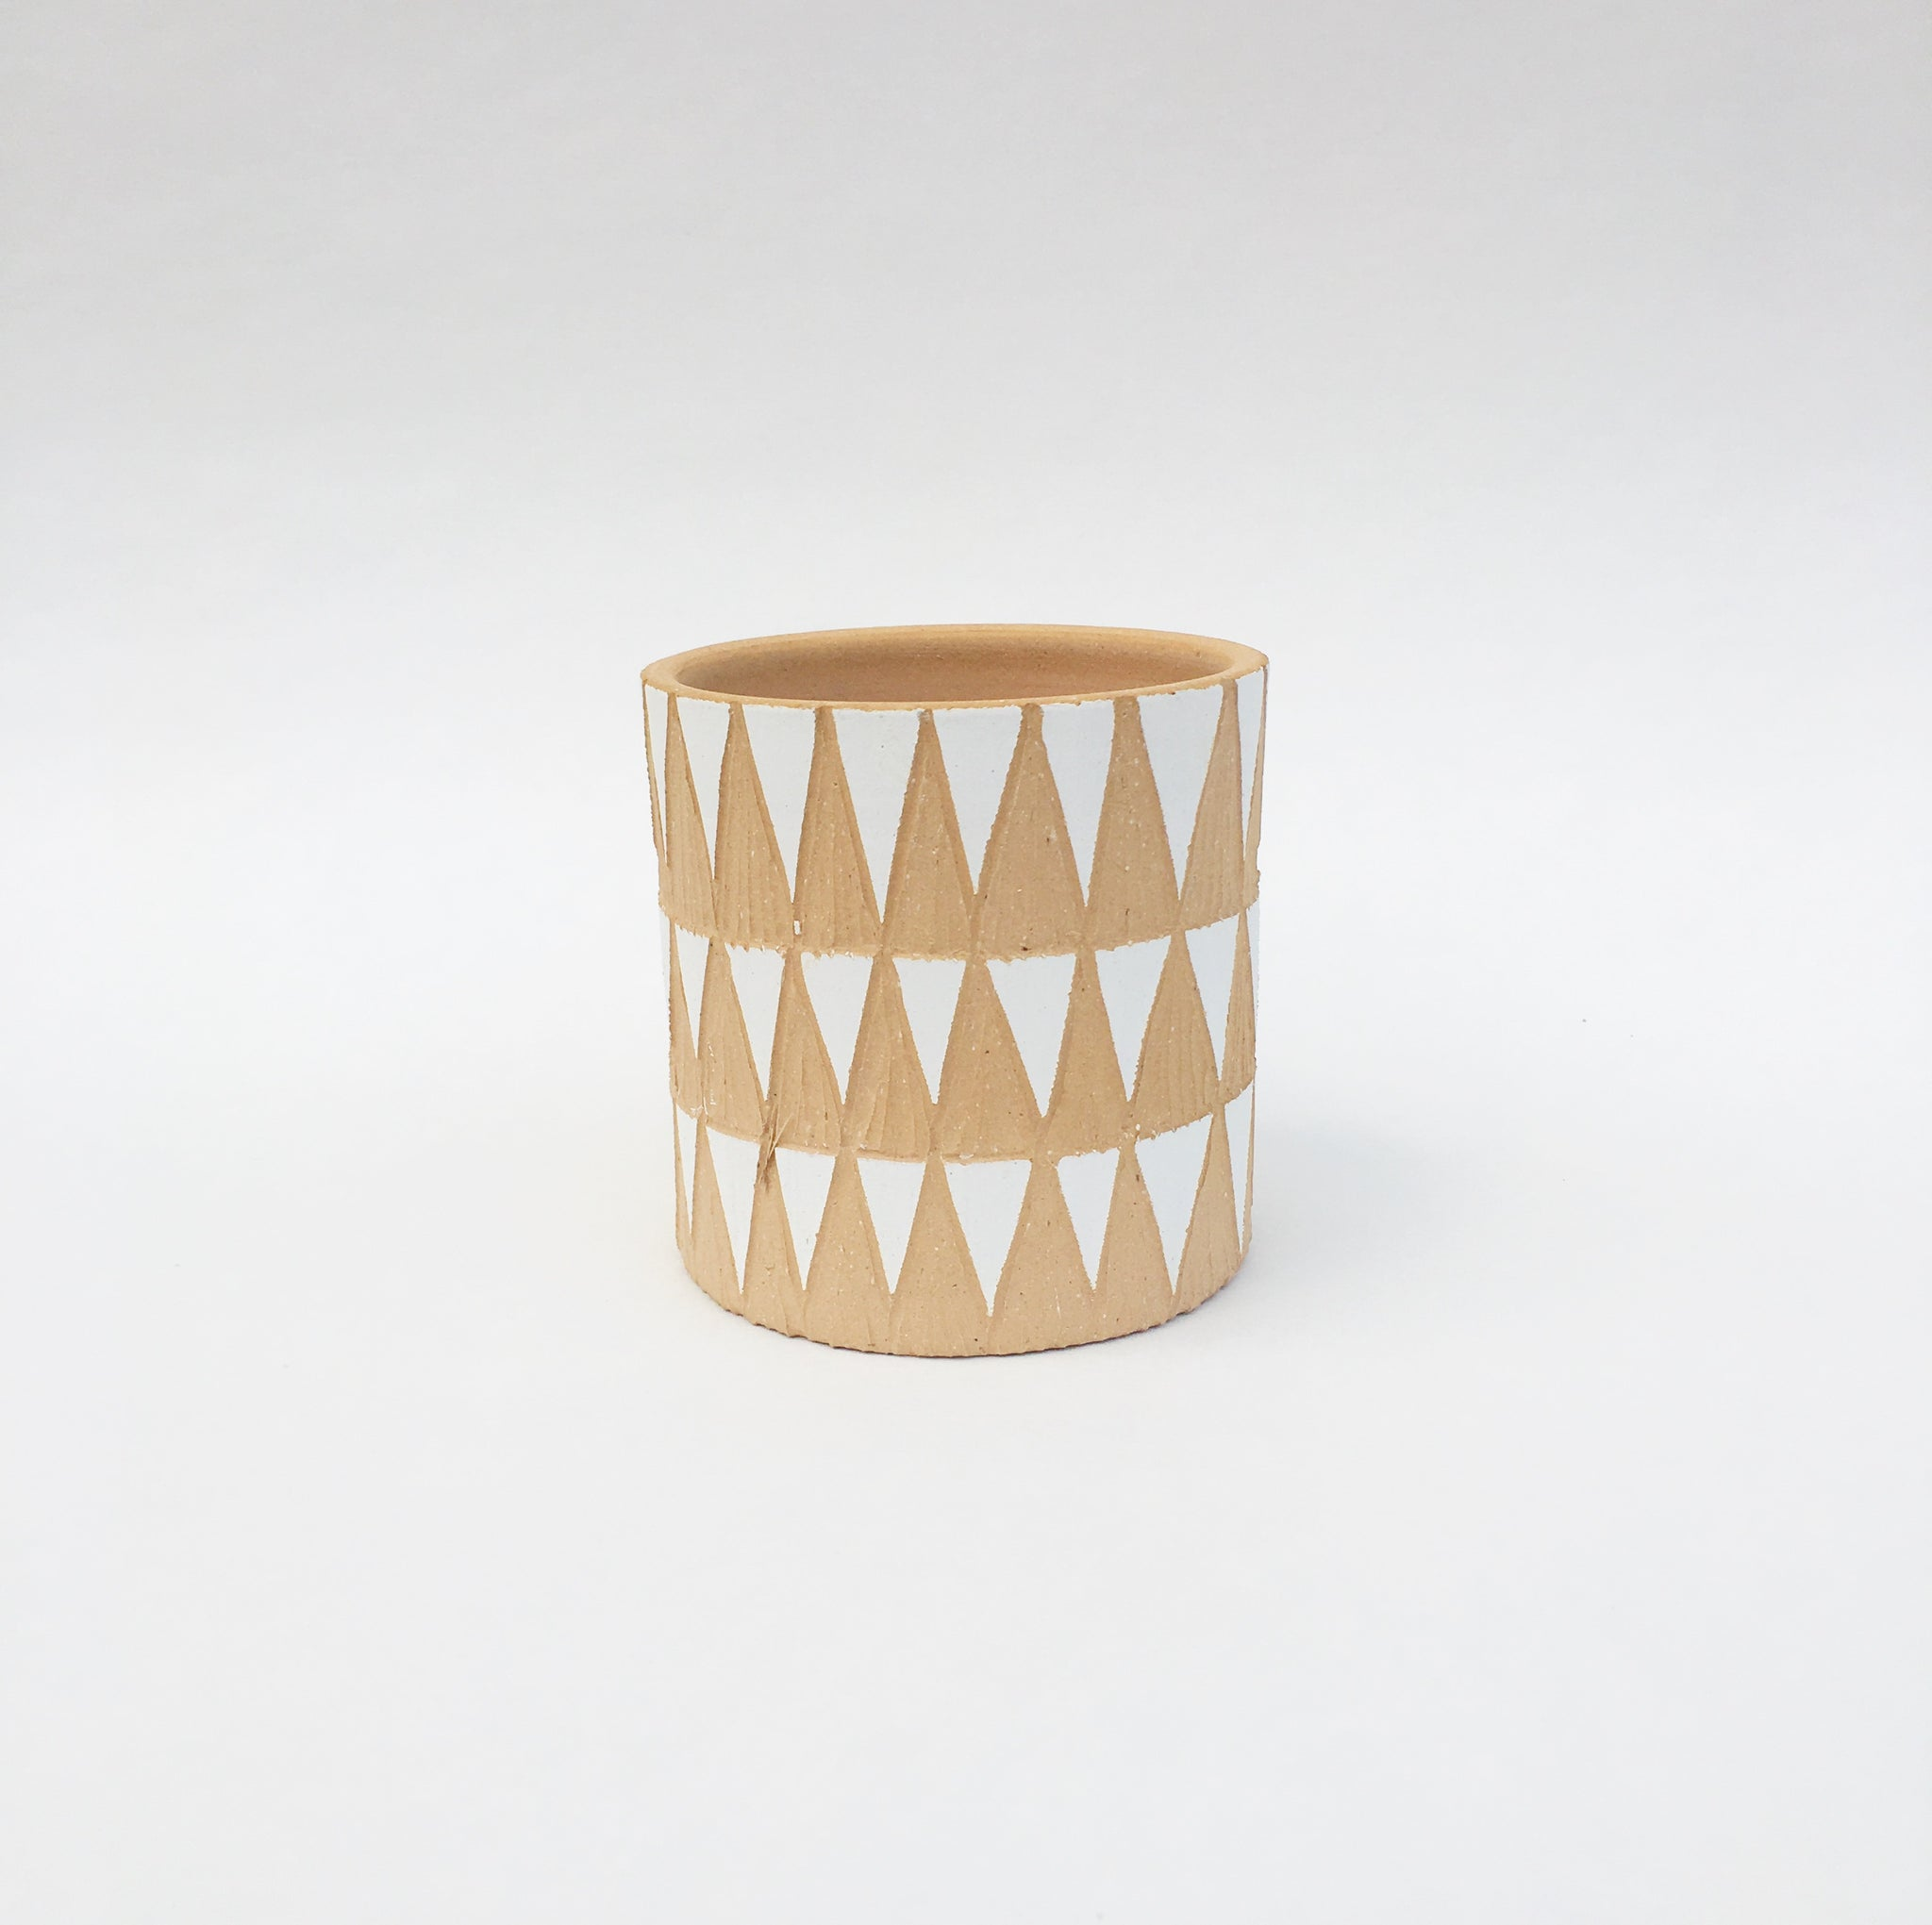 SMALL PLANT POT No. 16